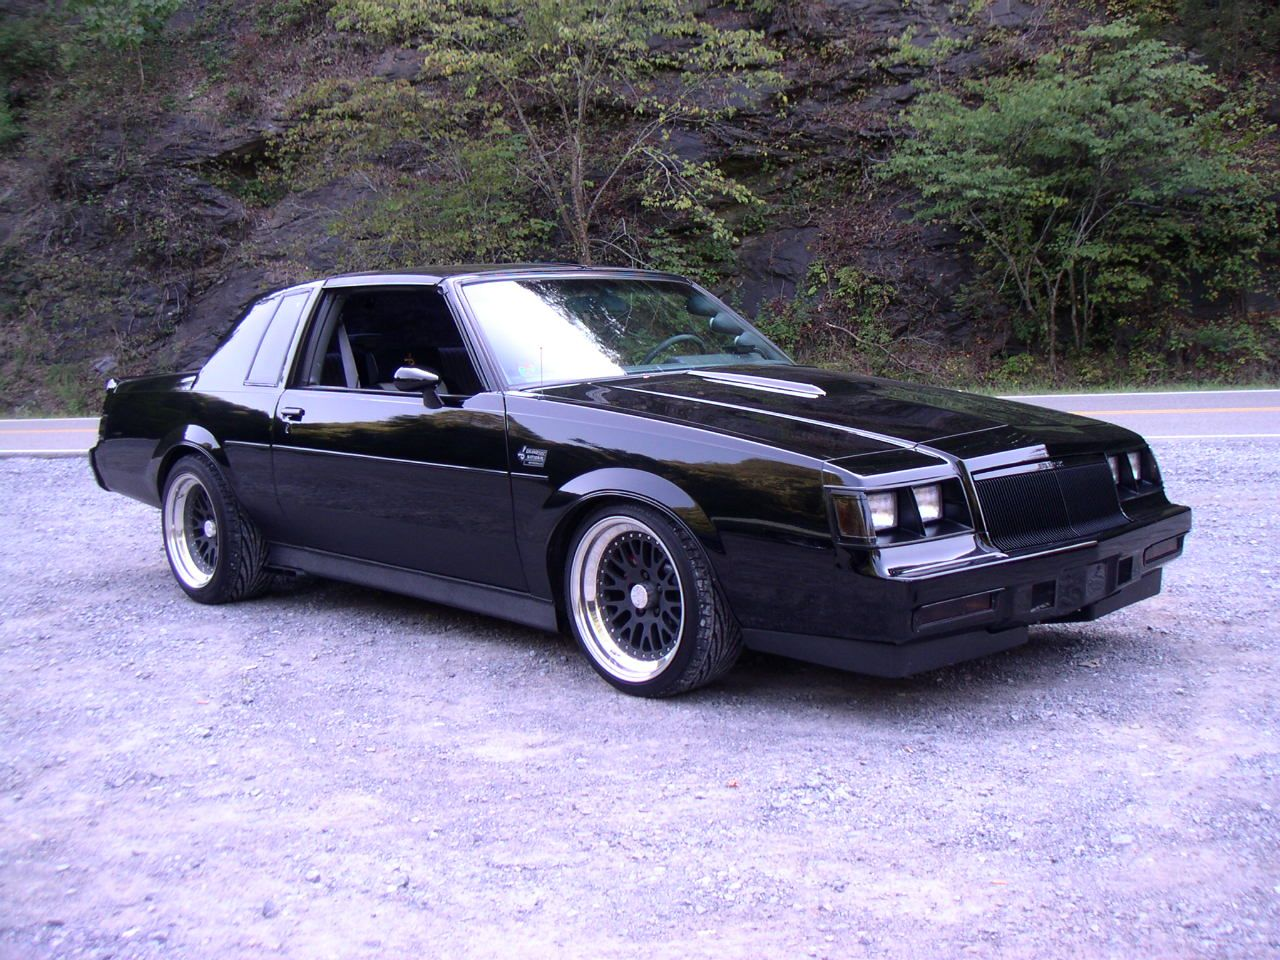 Pro Touring G Body >> Psychoticmetabolic Pro Touring G Body I Can T Wait To Get My Car